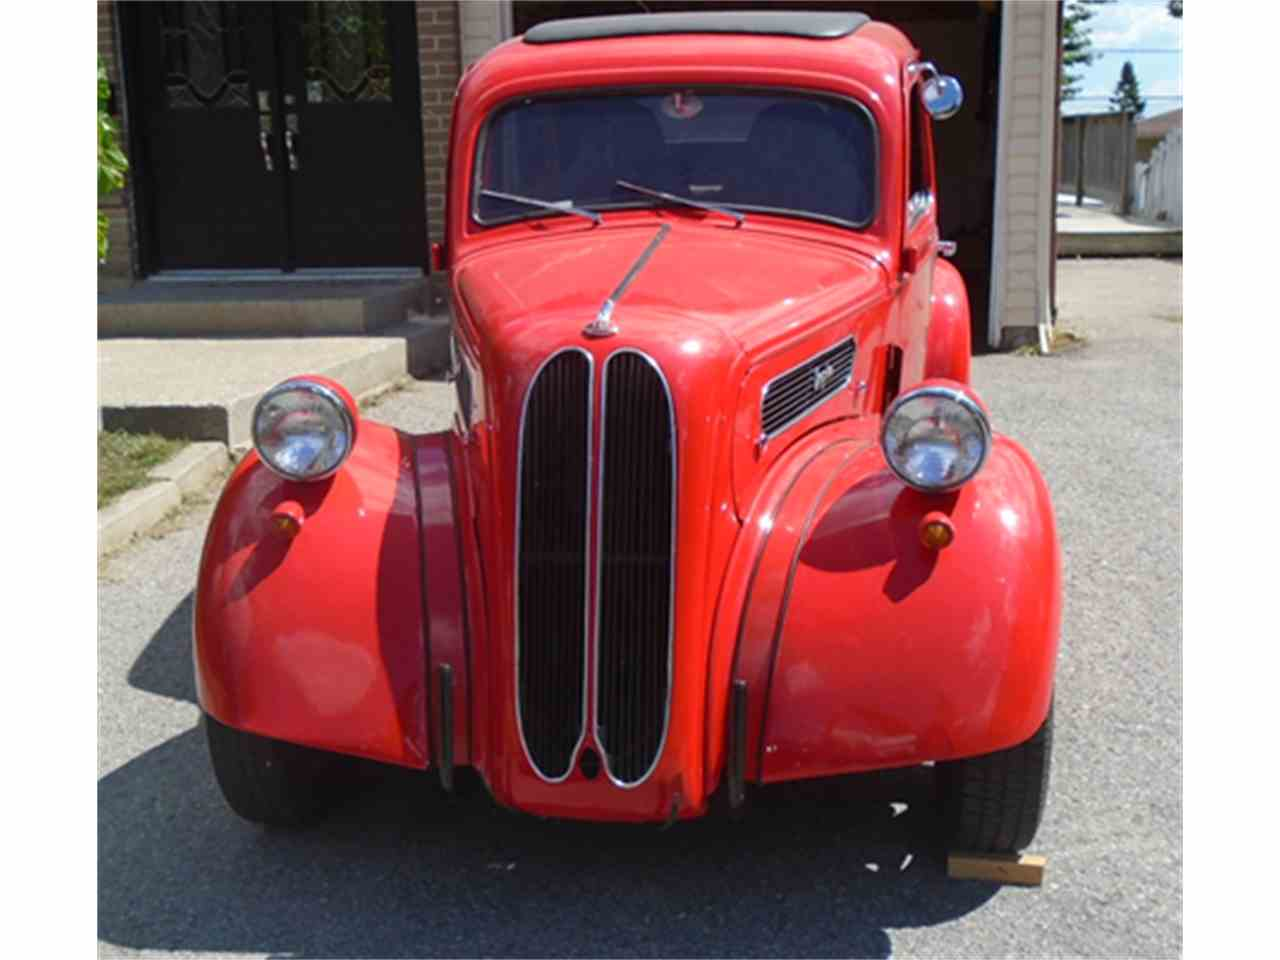 Large Picture of Classic '48 Anglia Street Rod located in Ontario - $26,000.00 Offered by a Private Seller - JOGM